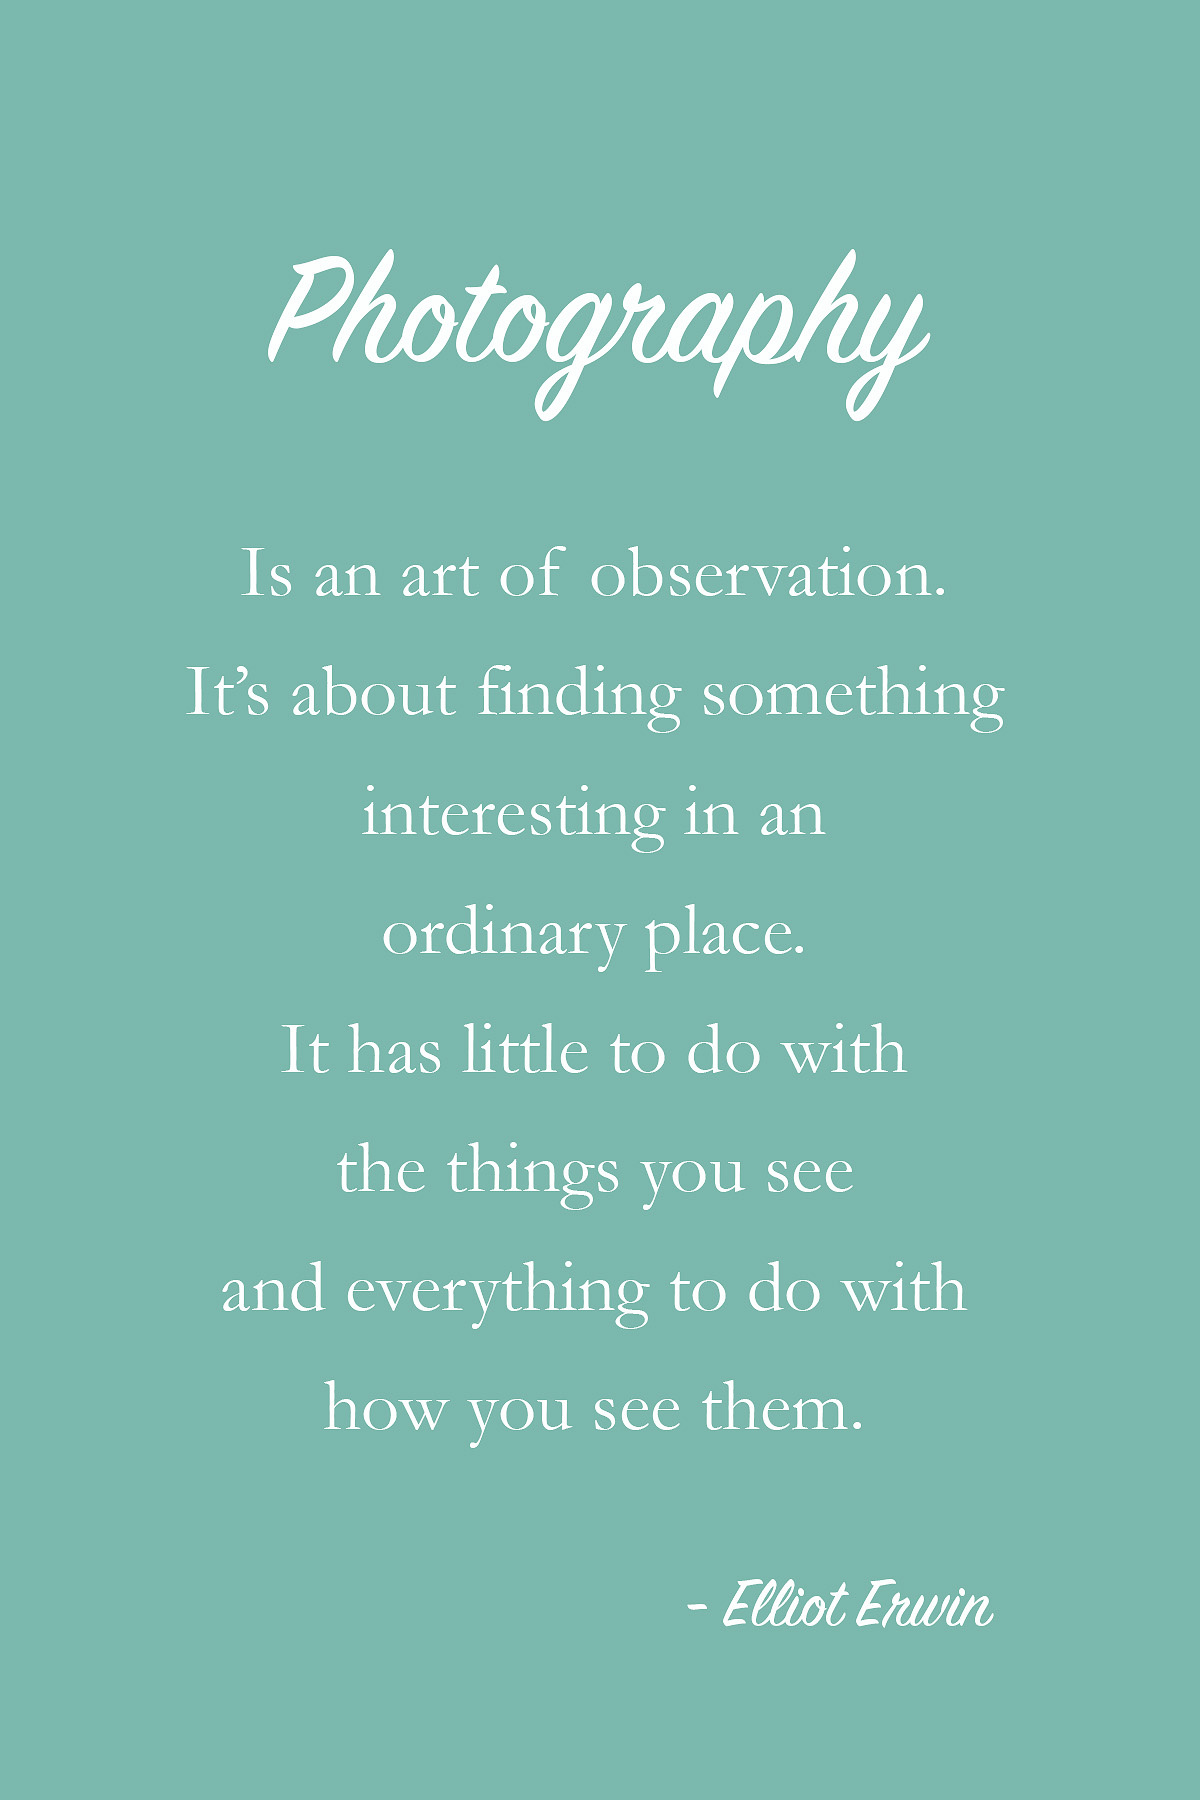 Have you ever thought about starting a photography blog? Or been unsure of where to even begin?This post takes you through some of the most basic steps to starting and building a thriving photography community.